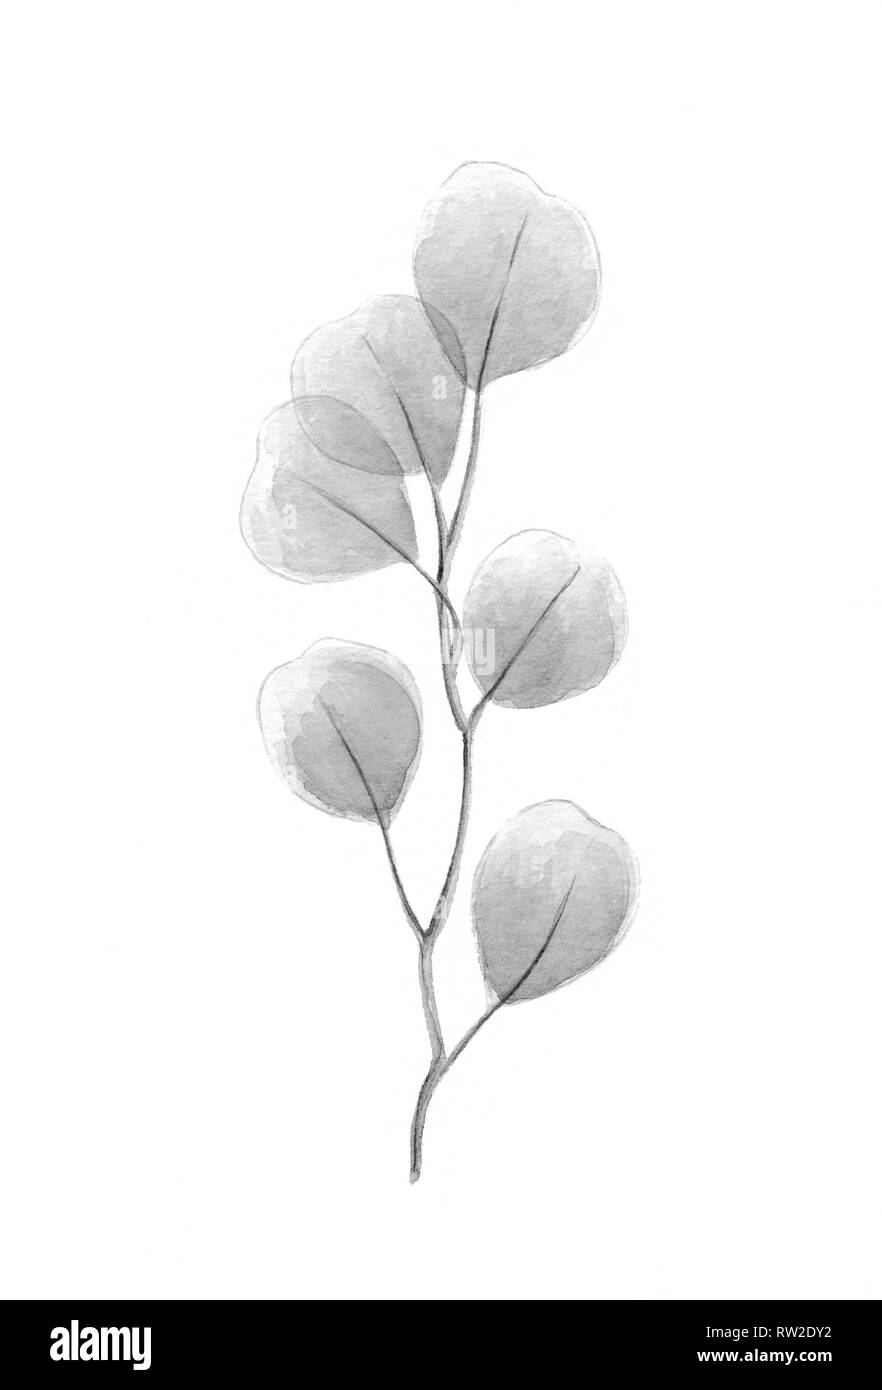 Silver dollar eucalyptus grayscale watercolor illustration with gray eucalyptus tree twig branch with round leaves heart shaped plant wedding decorati Stock Photo